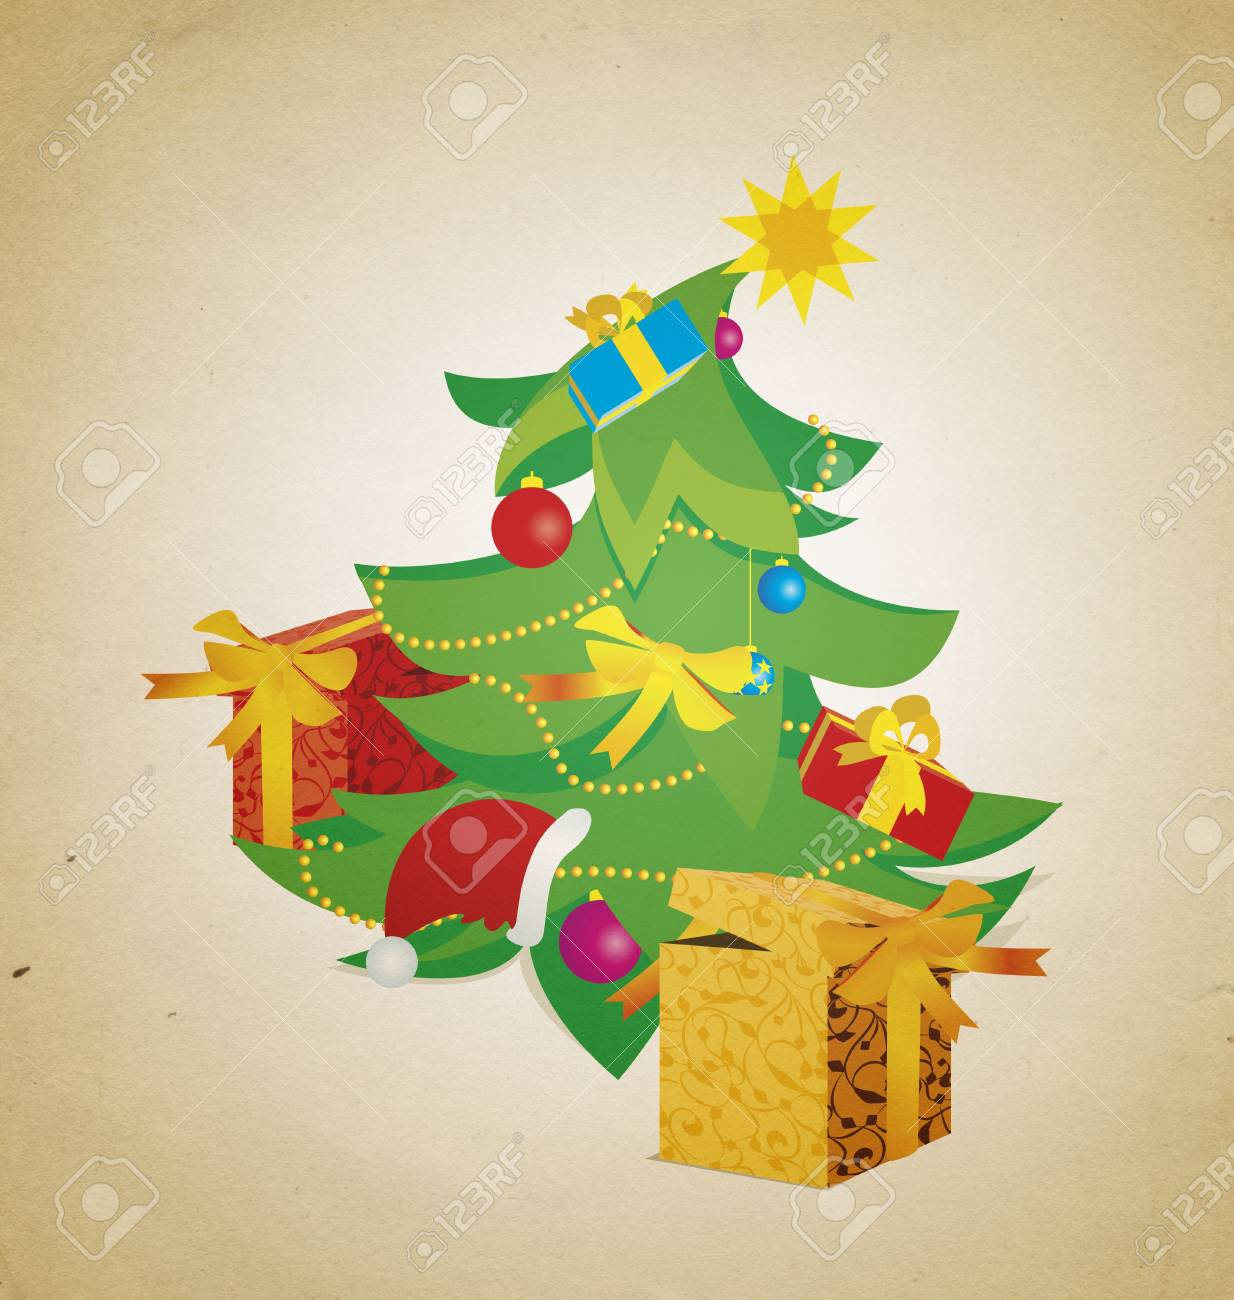 Vintage Christmas Tree With Gift Boxes Illustration Stock Photo Picture And Royalty Free Image Image 13417003